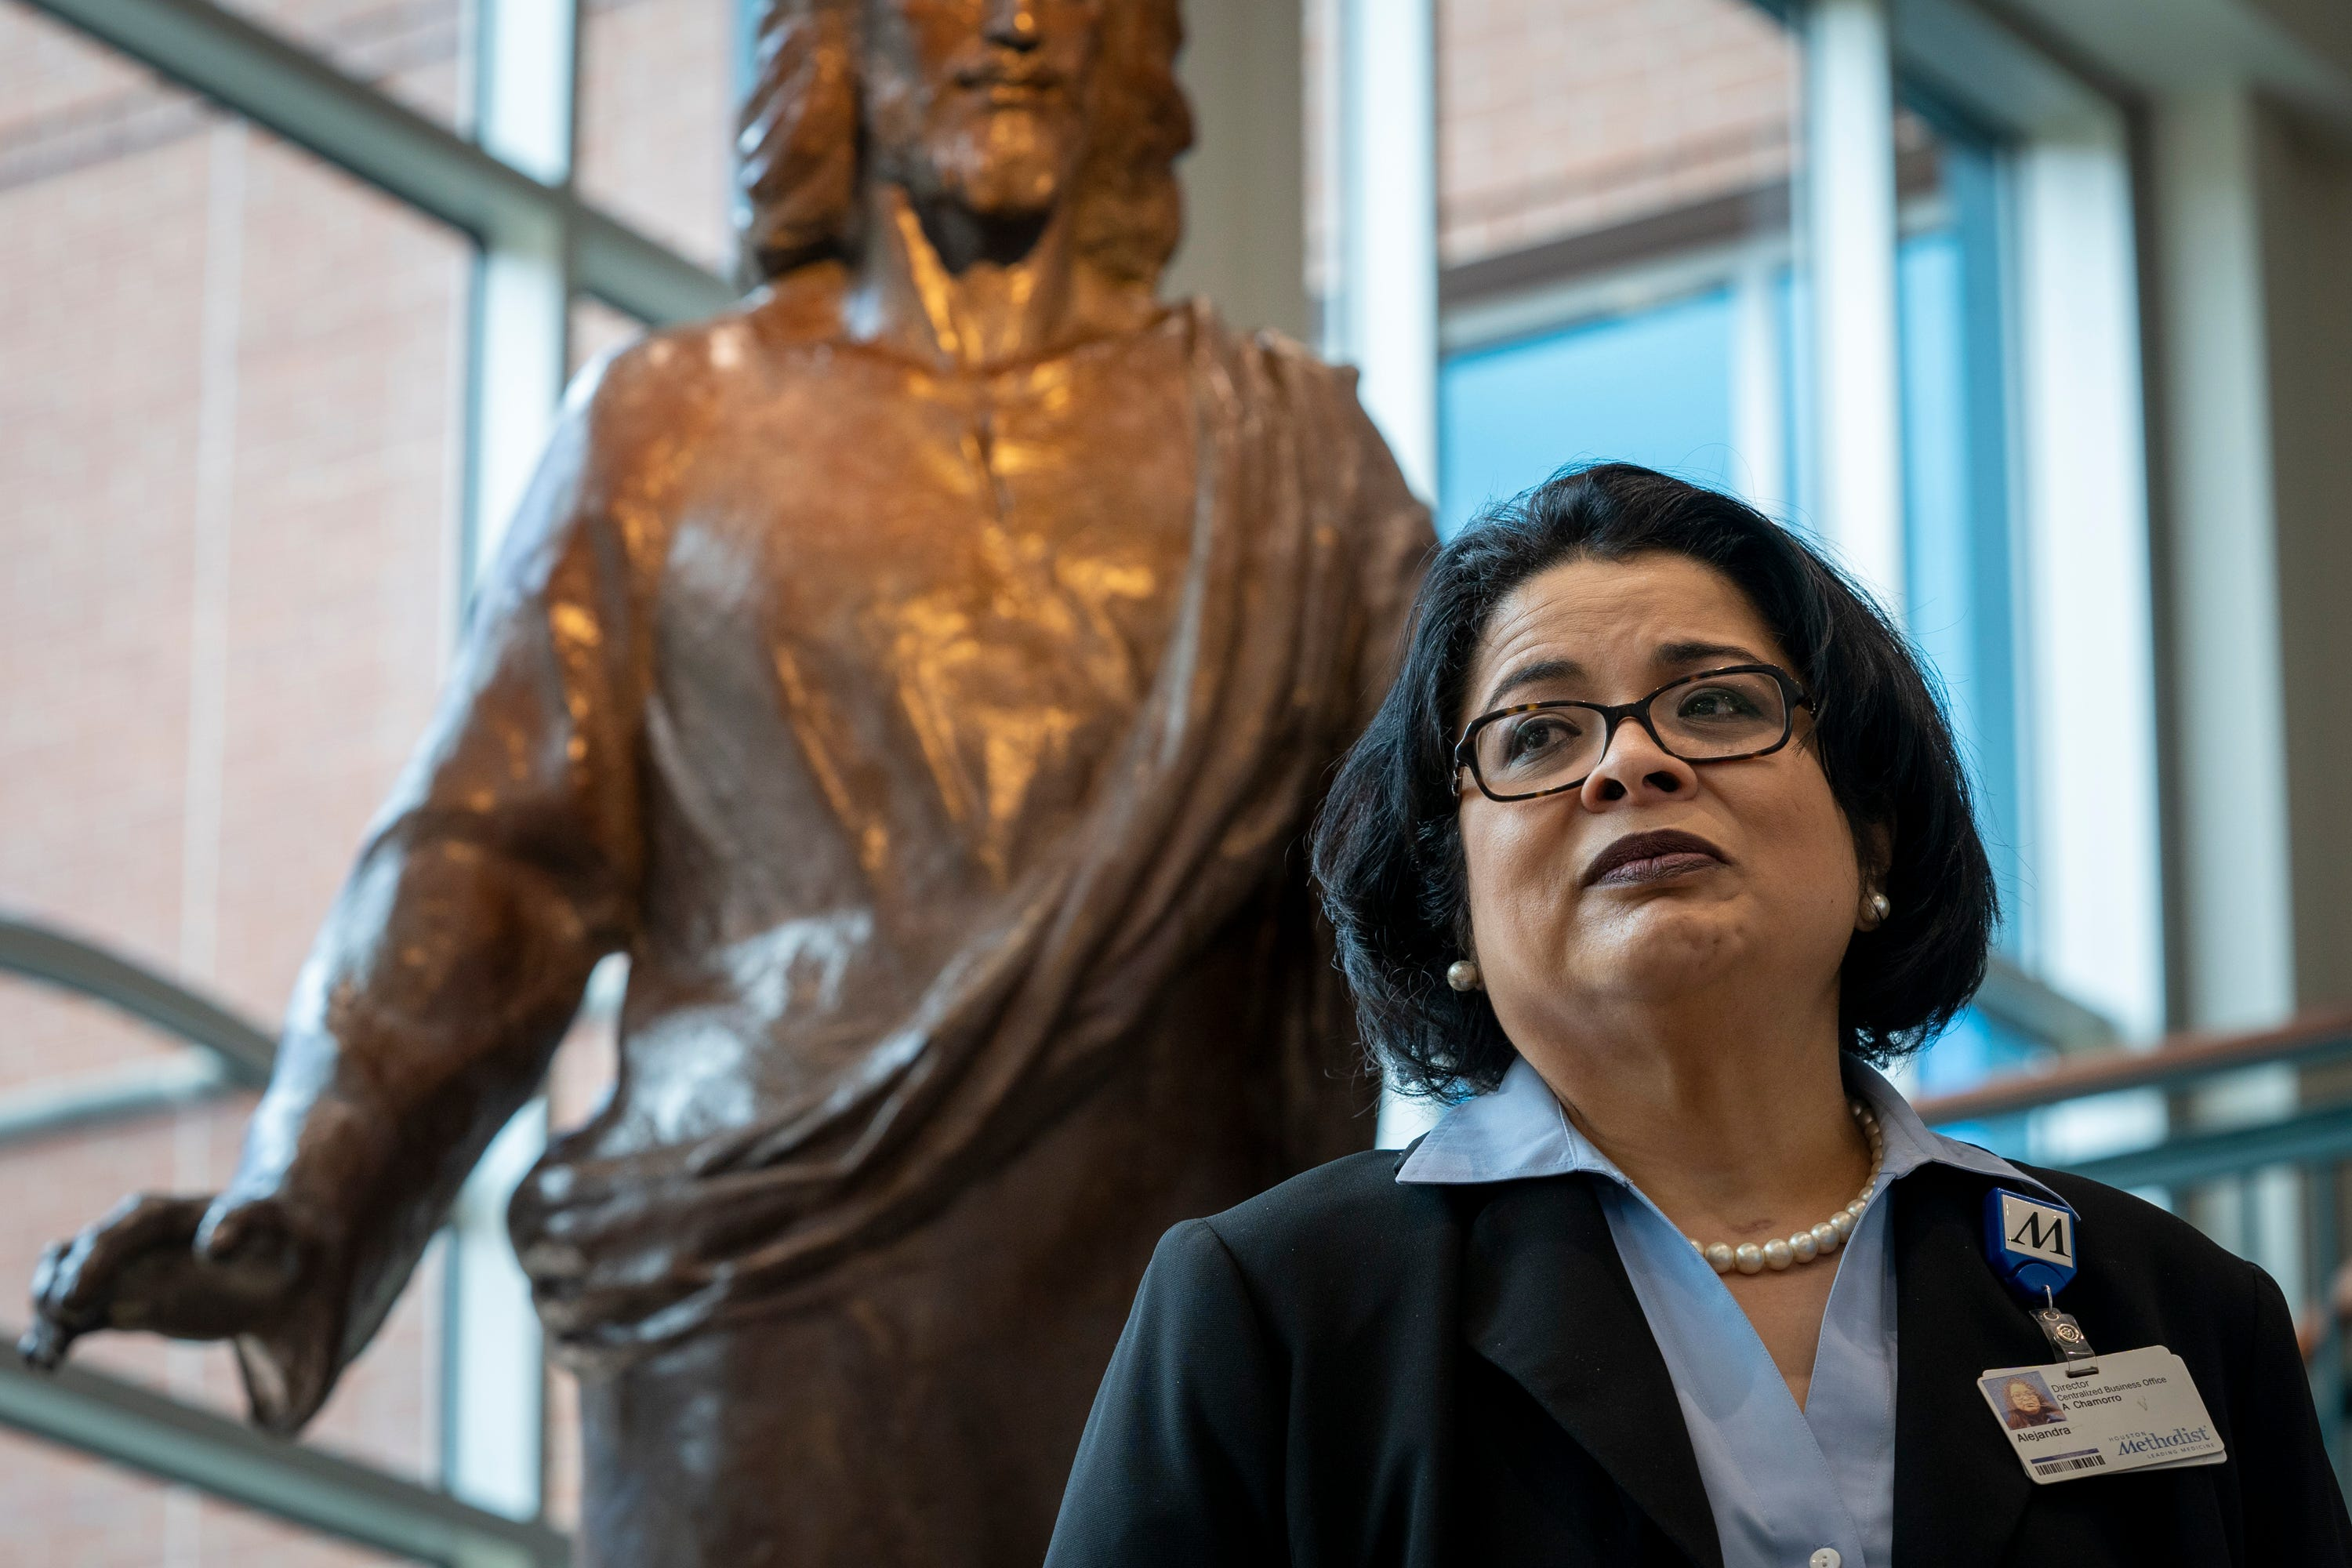 """Alejandra """"Alex"""" Chamorro, who oversees insurance billing for the hospital system, in front of a statue of """"Jesus-The Great Physician"""" in the lobby of the Houston Methodist Continuing Care Hospital facility."""